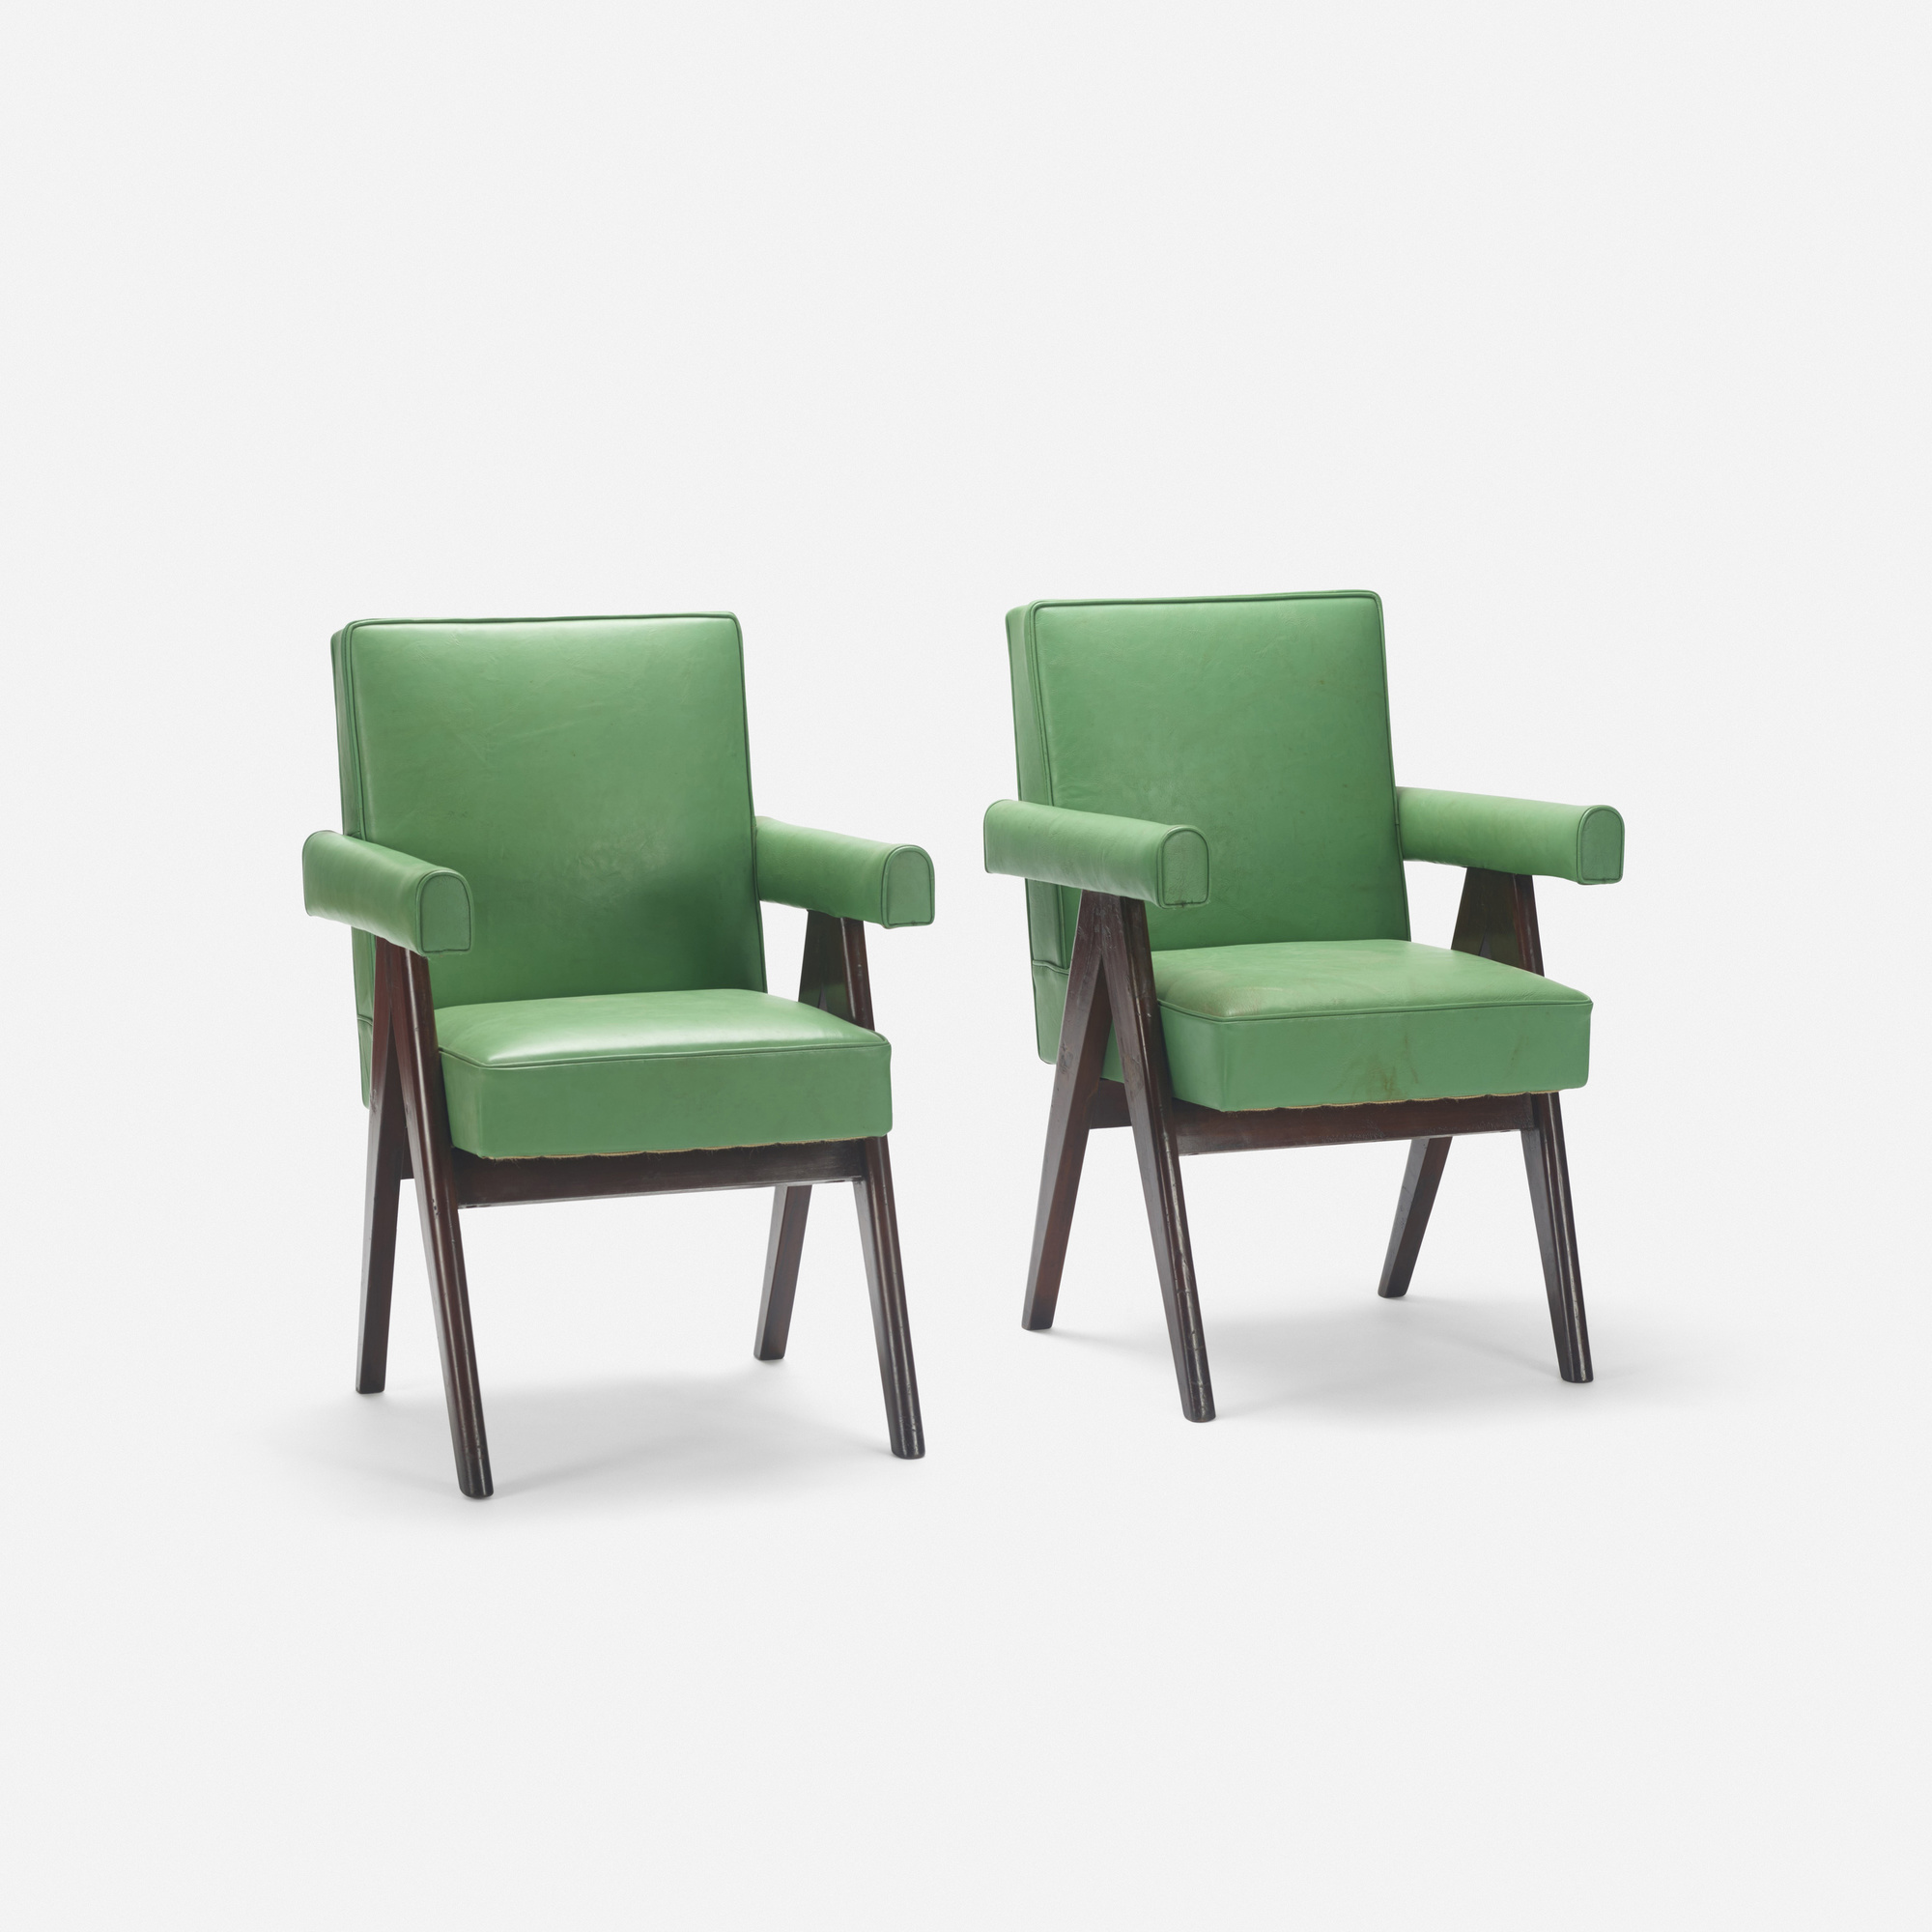 112: Pierre Jeanneret / pair of Committee armchairs from the High Court, Chandigarh (2 of 2)